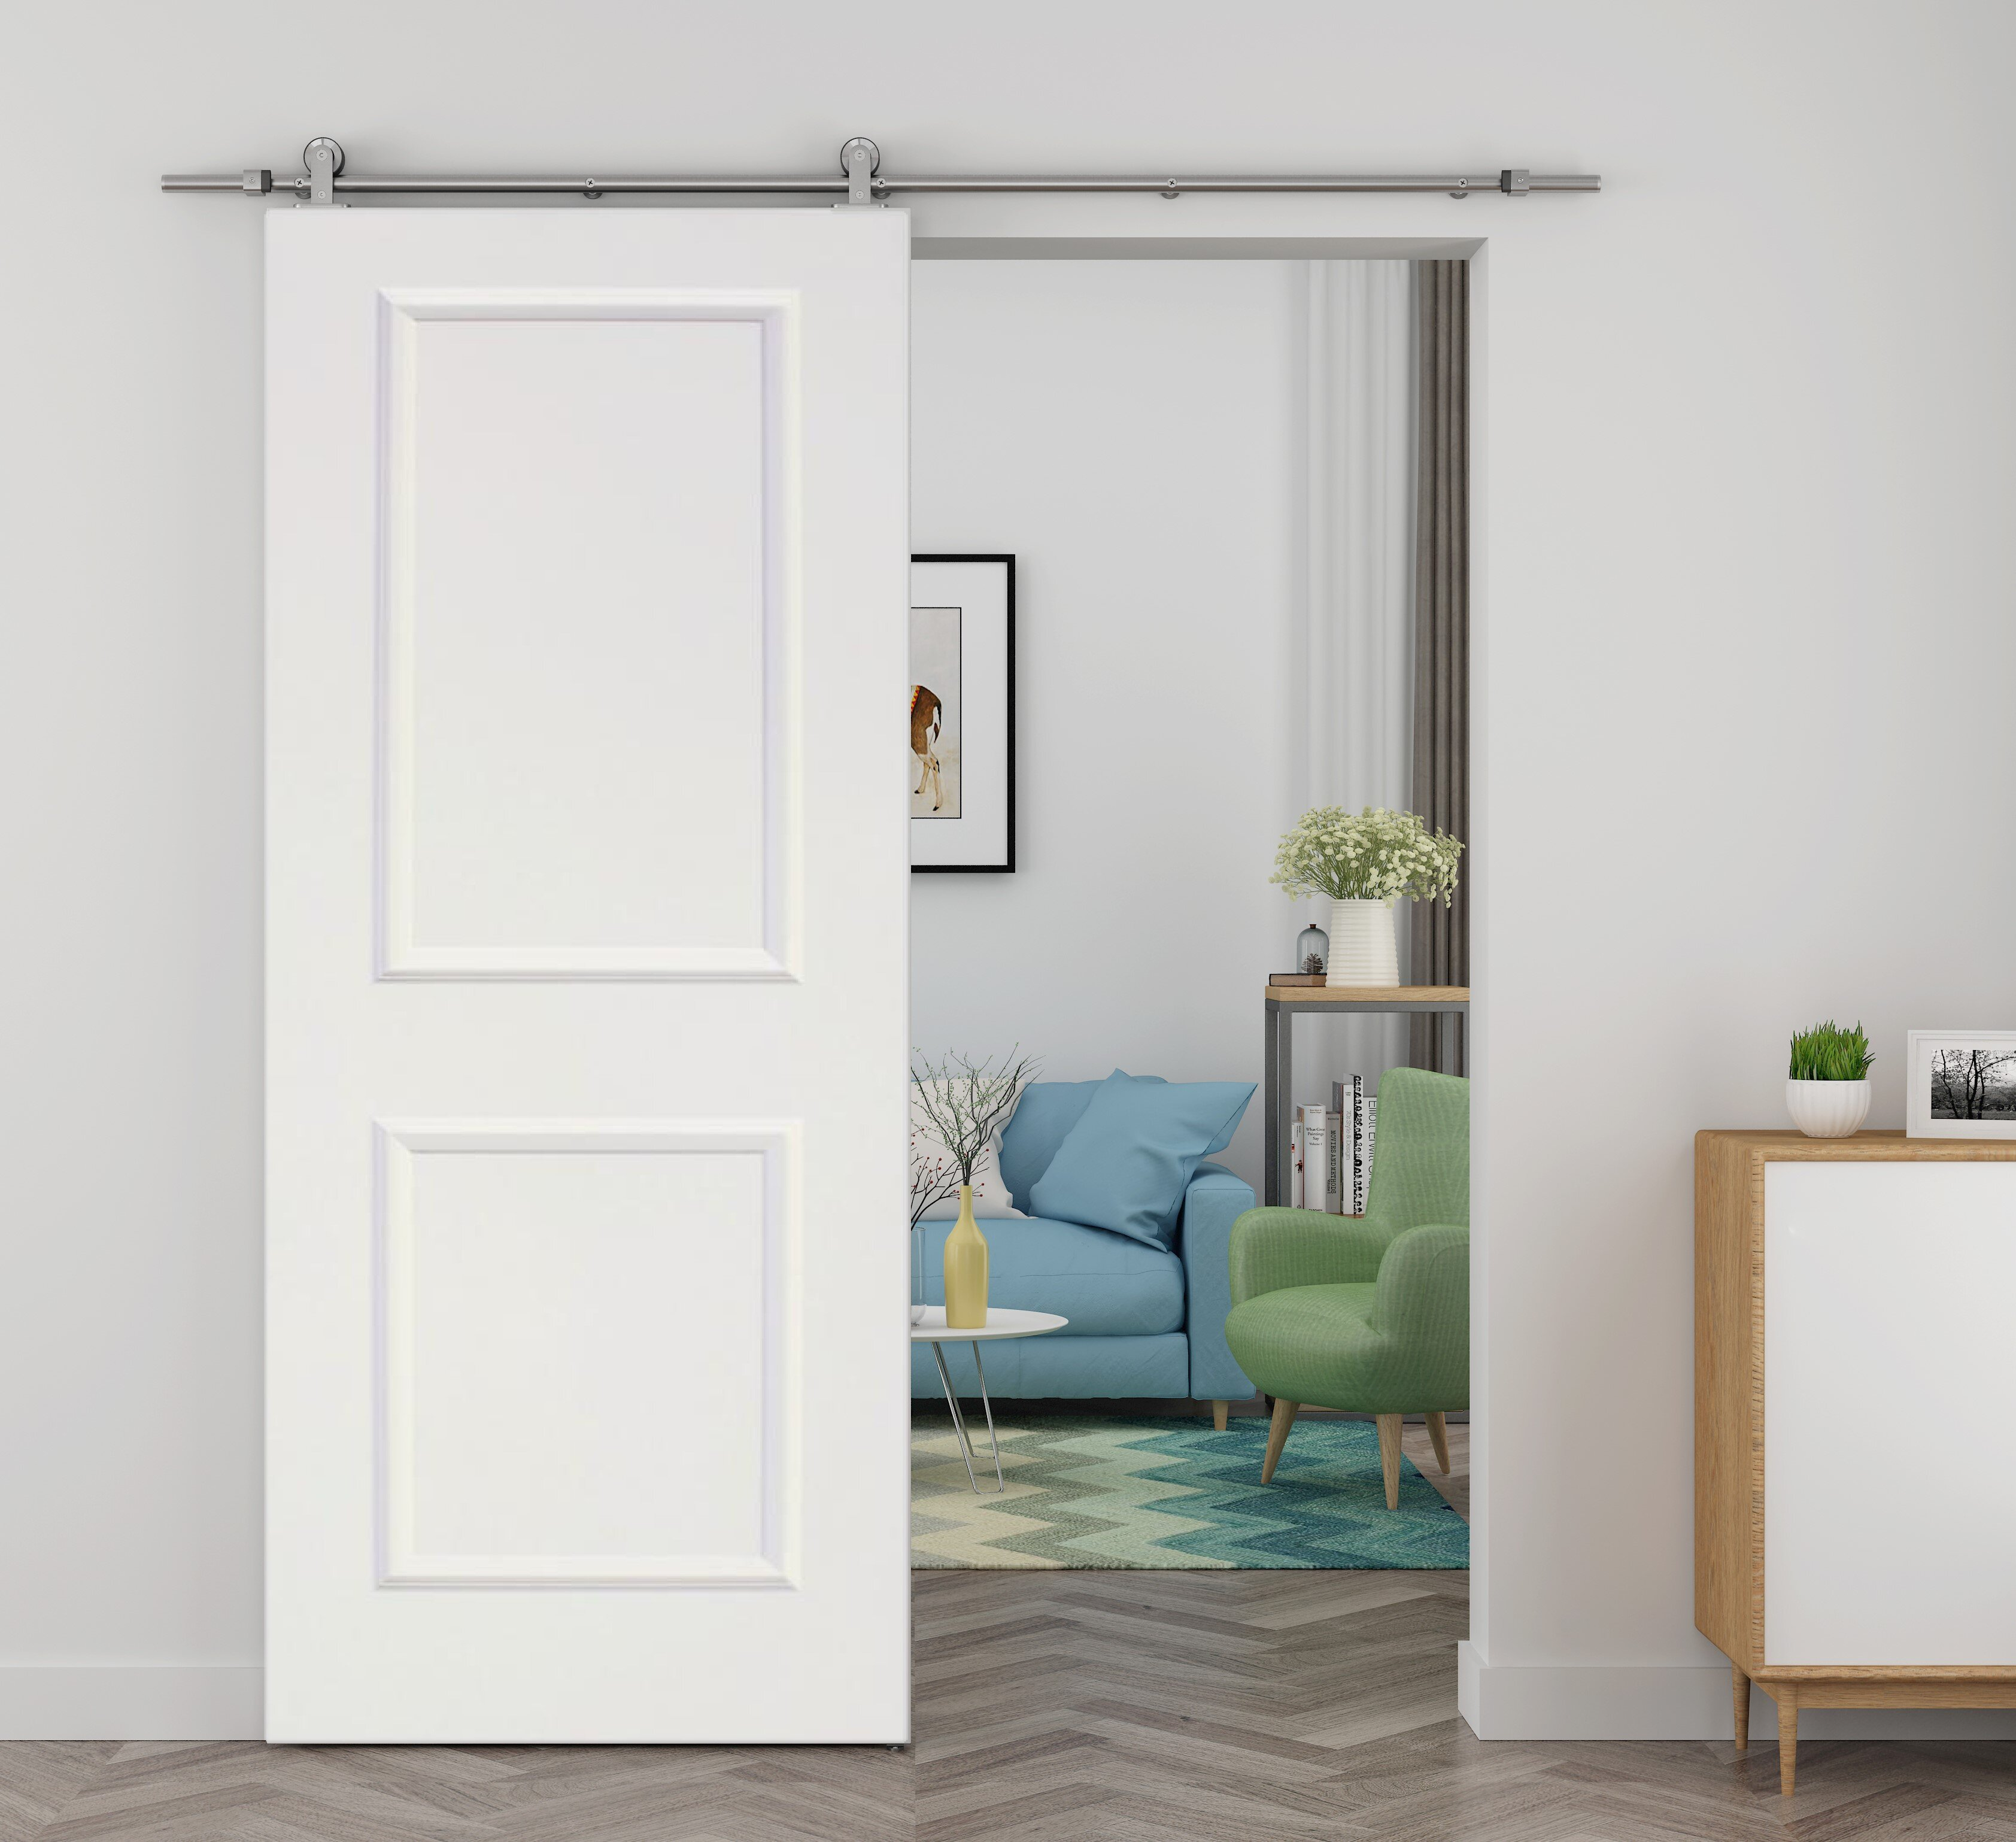 Calhome Paneled Wood Primed Barn Door With Installation Hardware Kit Reviews Wayfair